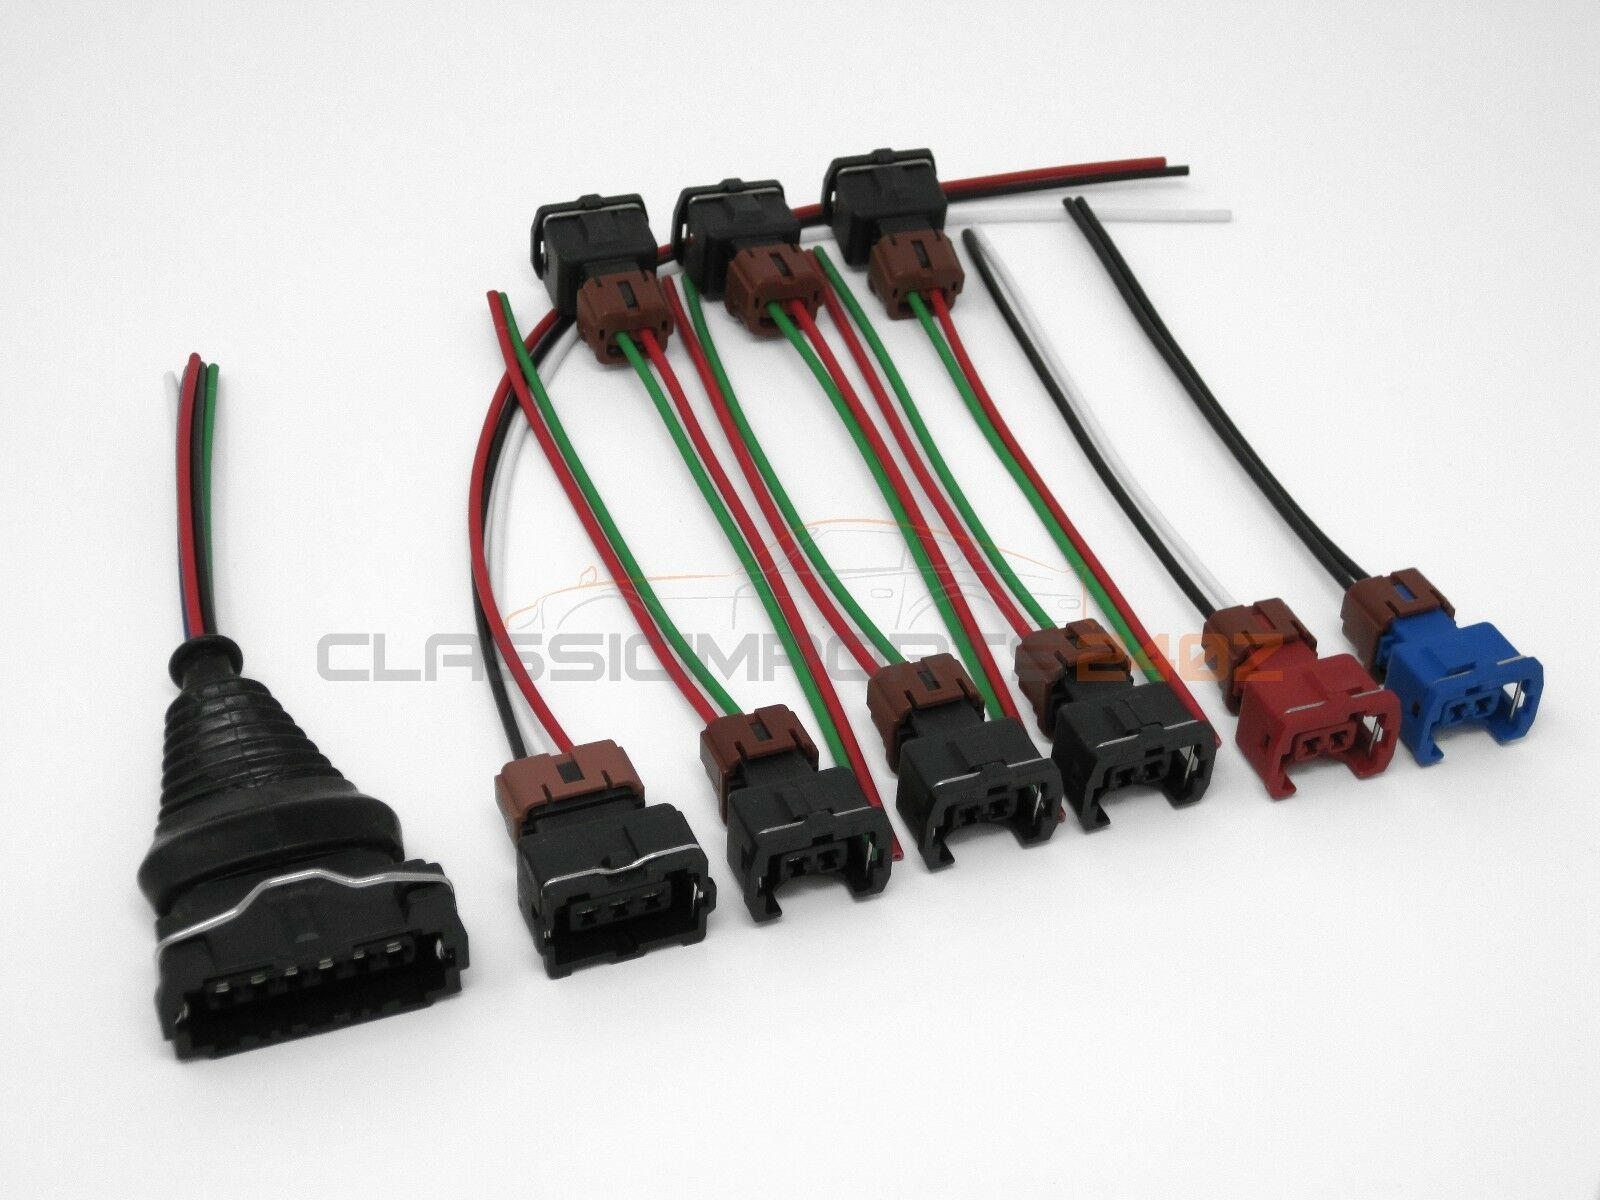 Fuel Injector Maf Tps Wiring Harness Connector Kit For Nissan 300zx Z31 Filter 1 Of 3only 3 Available